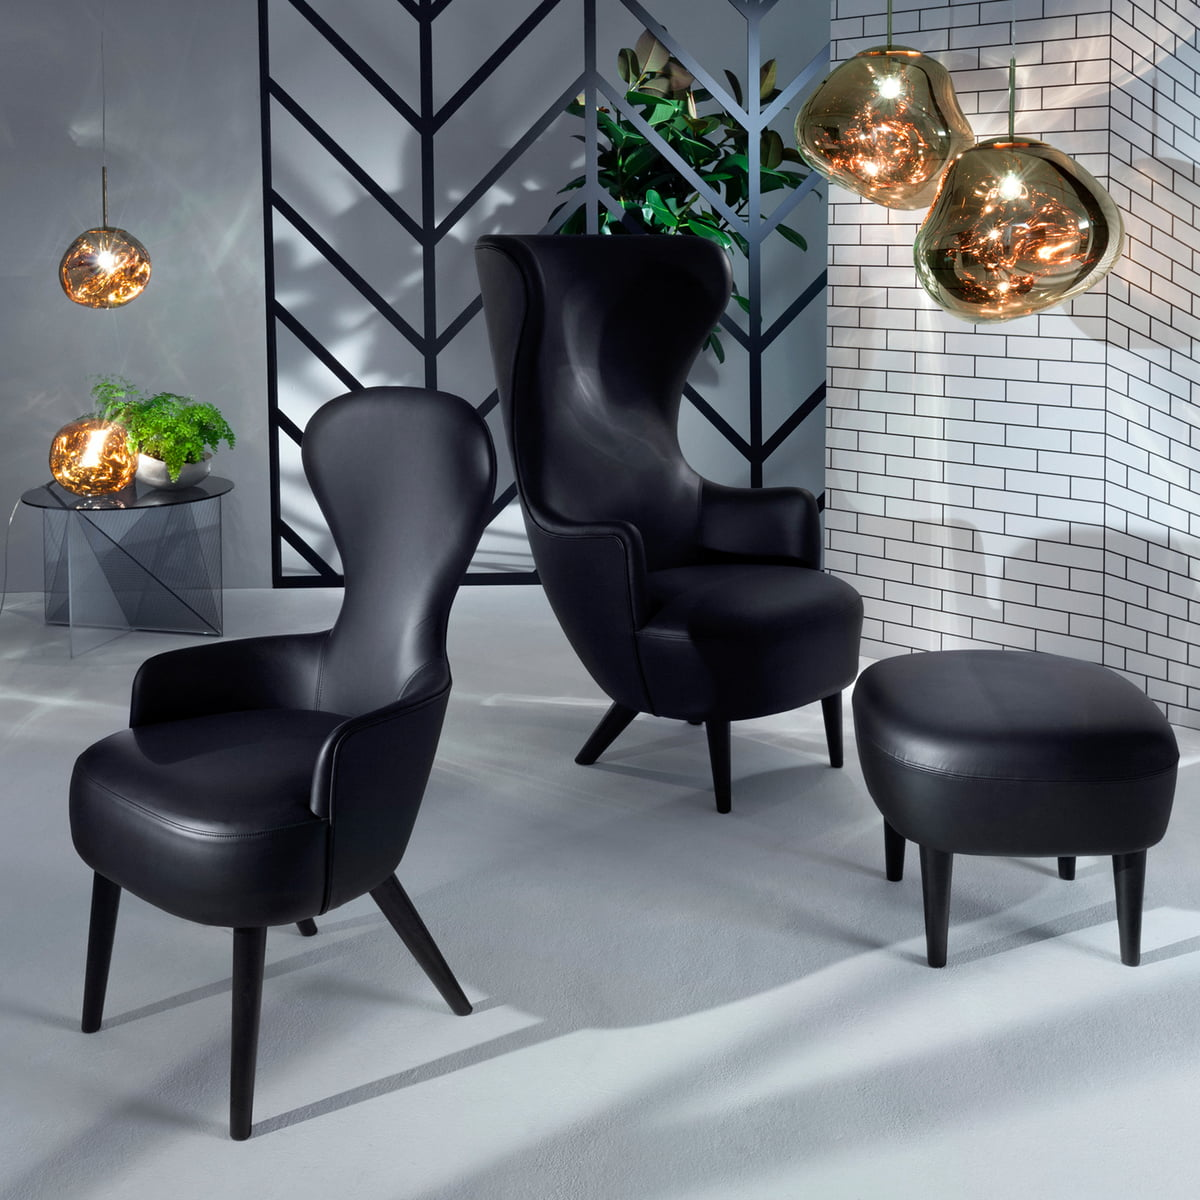 melt pendelleuchte von tom dixon connox. Black Bedroom Furniture Sets. Home Design Ideas